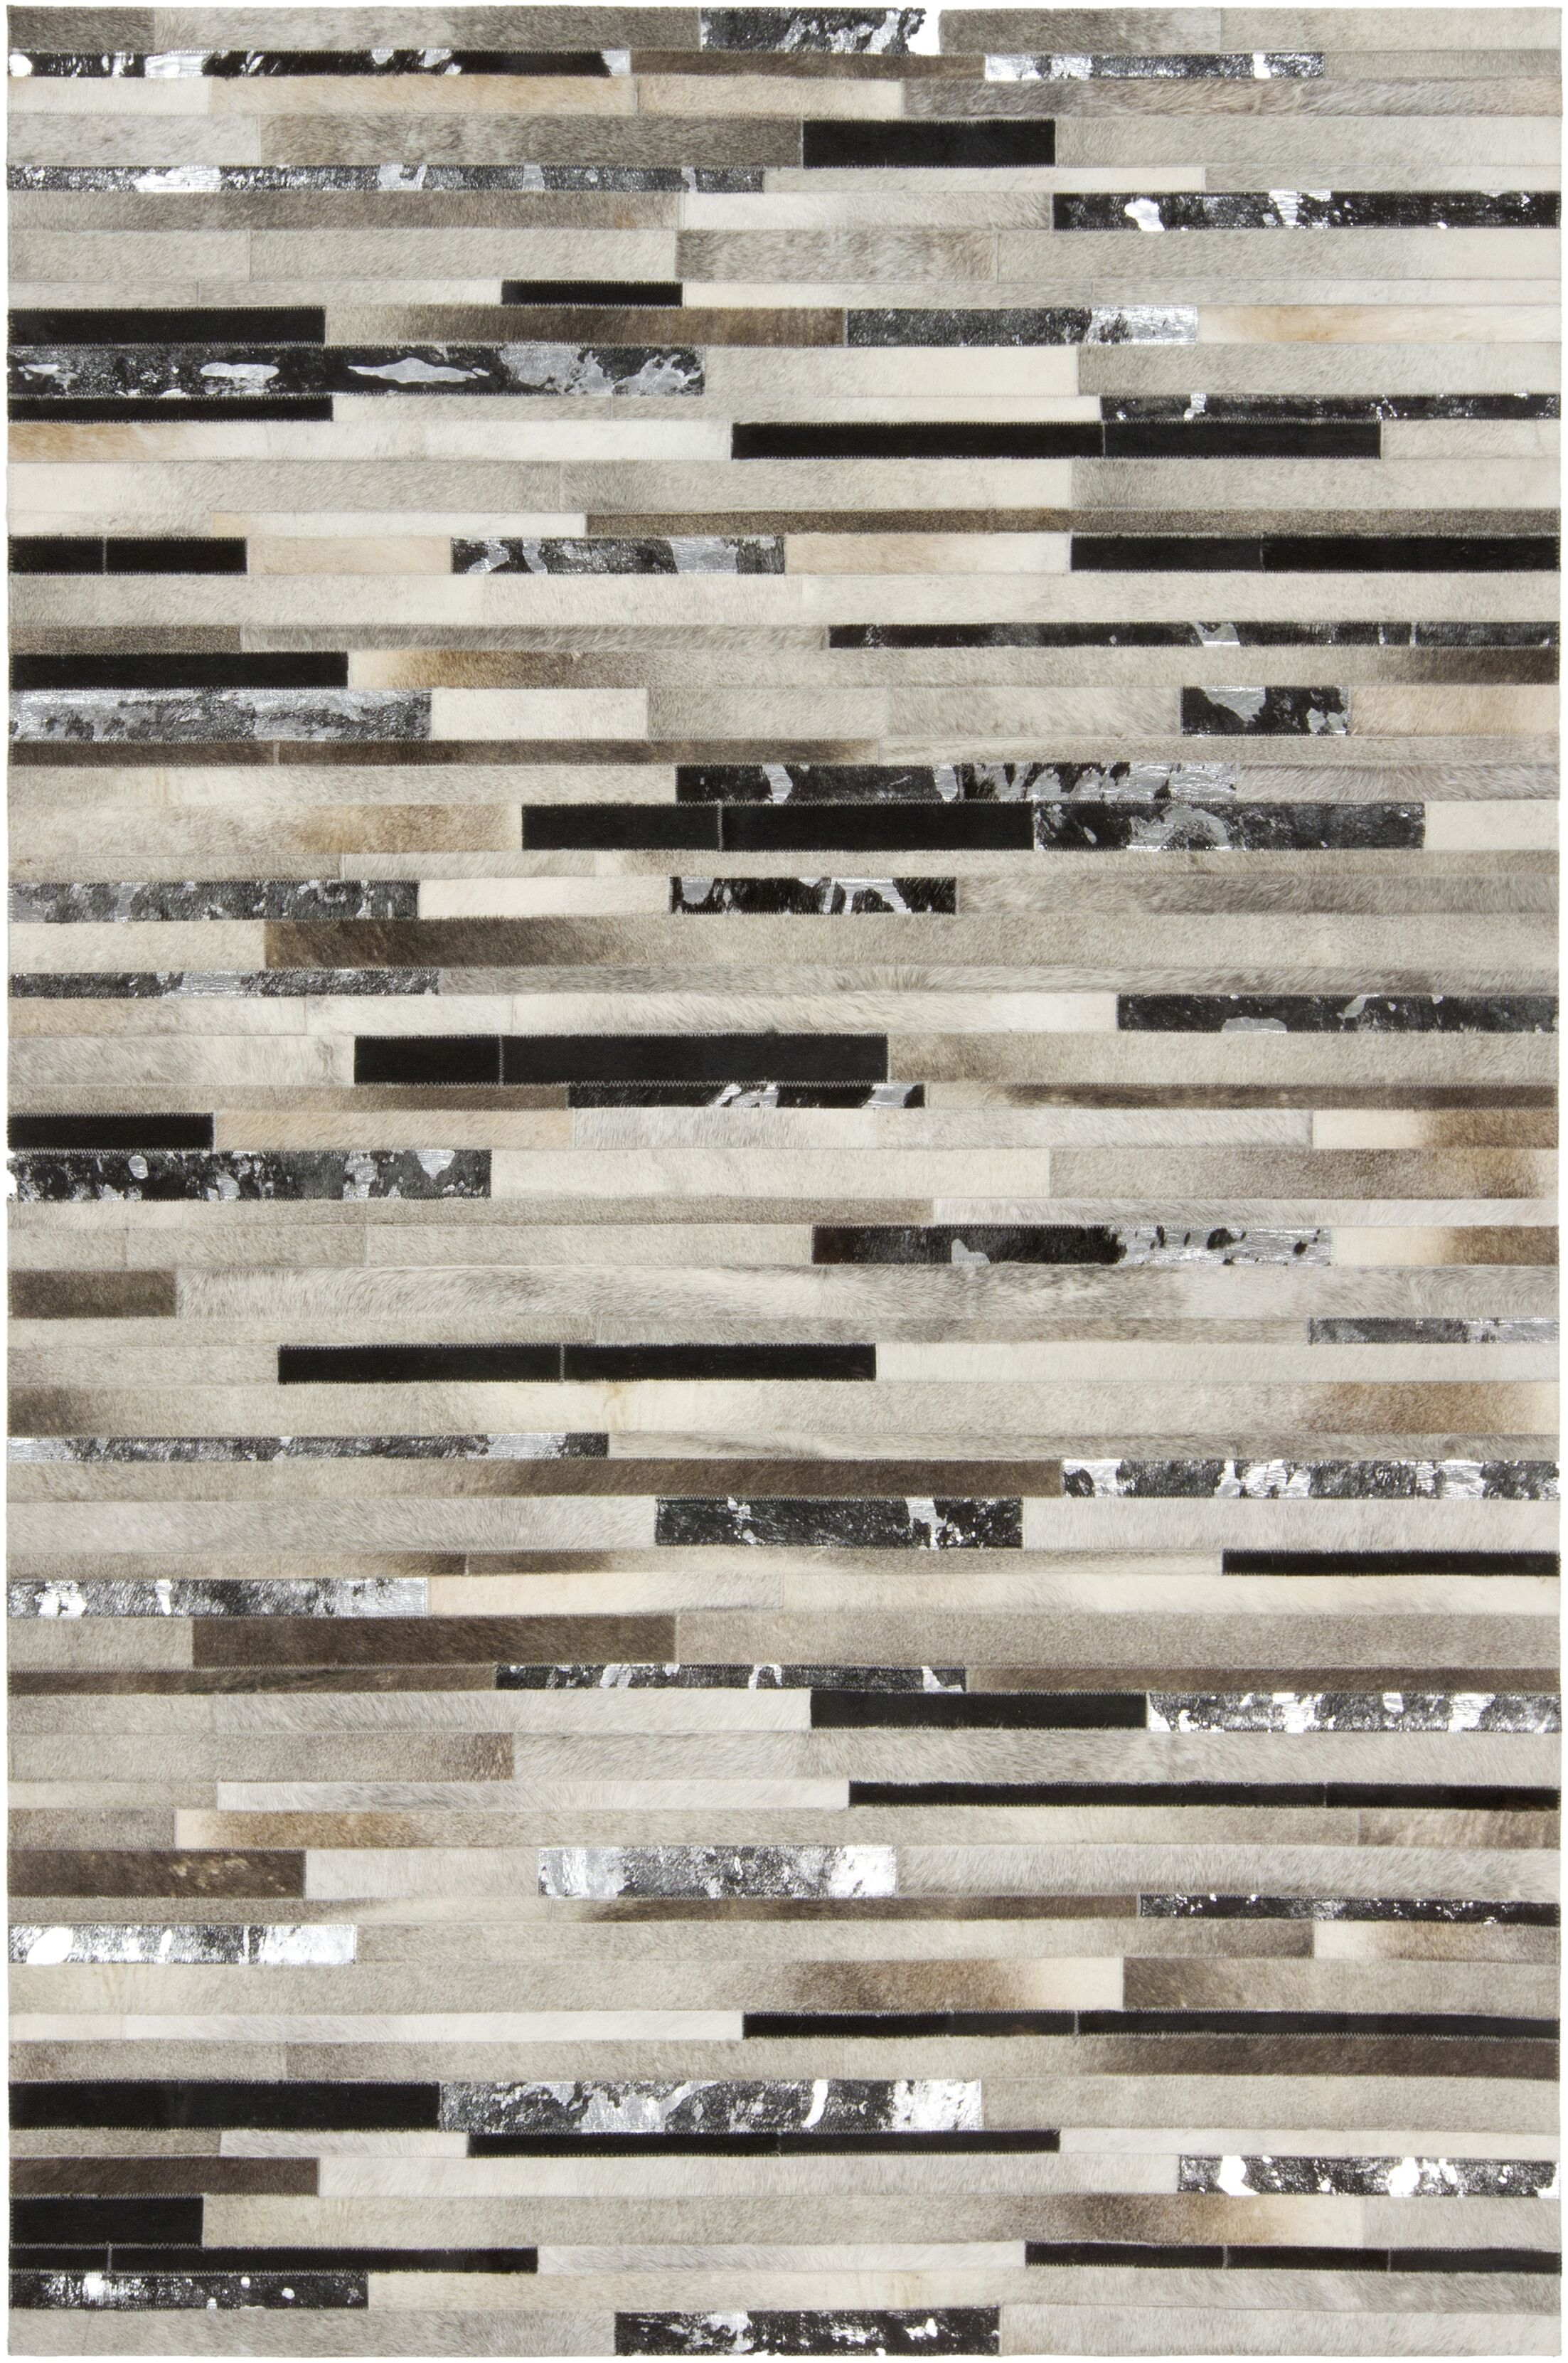 Losey Hand Woven Cowhide Gray Area Rug Rug Size: Rectangle 8' x 10'